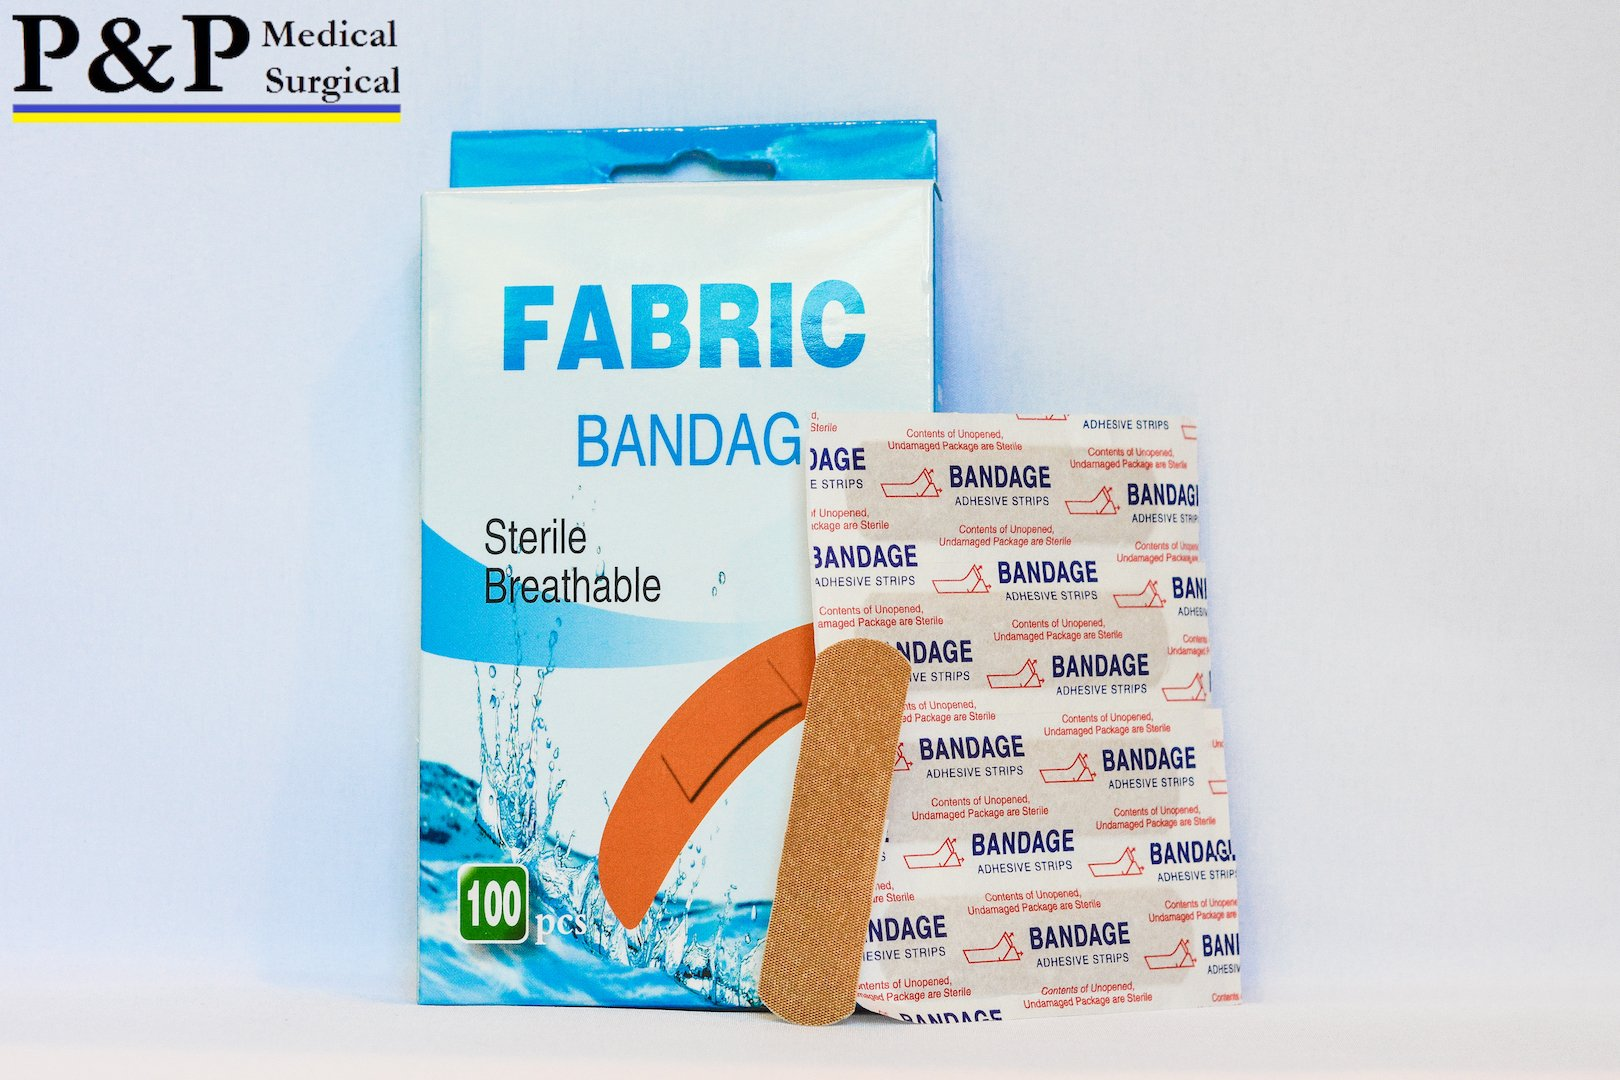 BAND AID 3/4``x3`` STERILE CASE of 5500 FLEXIBLE SELF ADHESIVE BANDAGES (Class AAB Fabric used for production) Designed in USA by P&P Medical Surgical